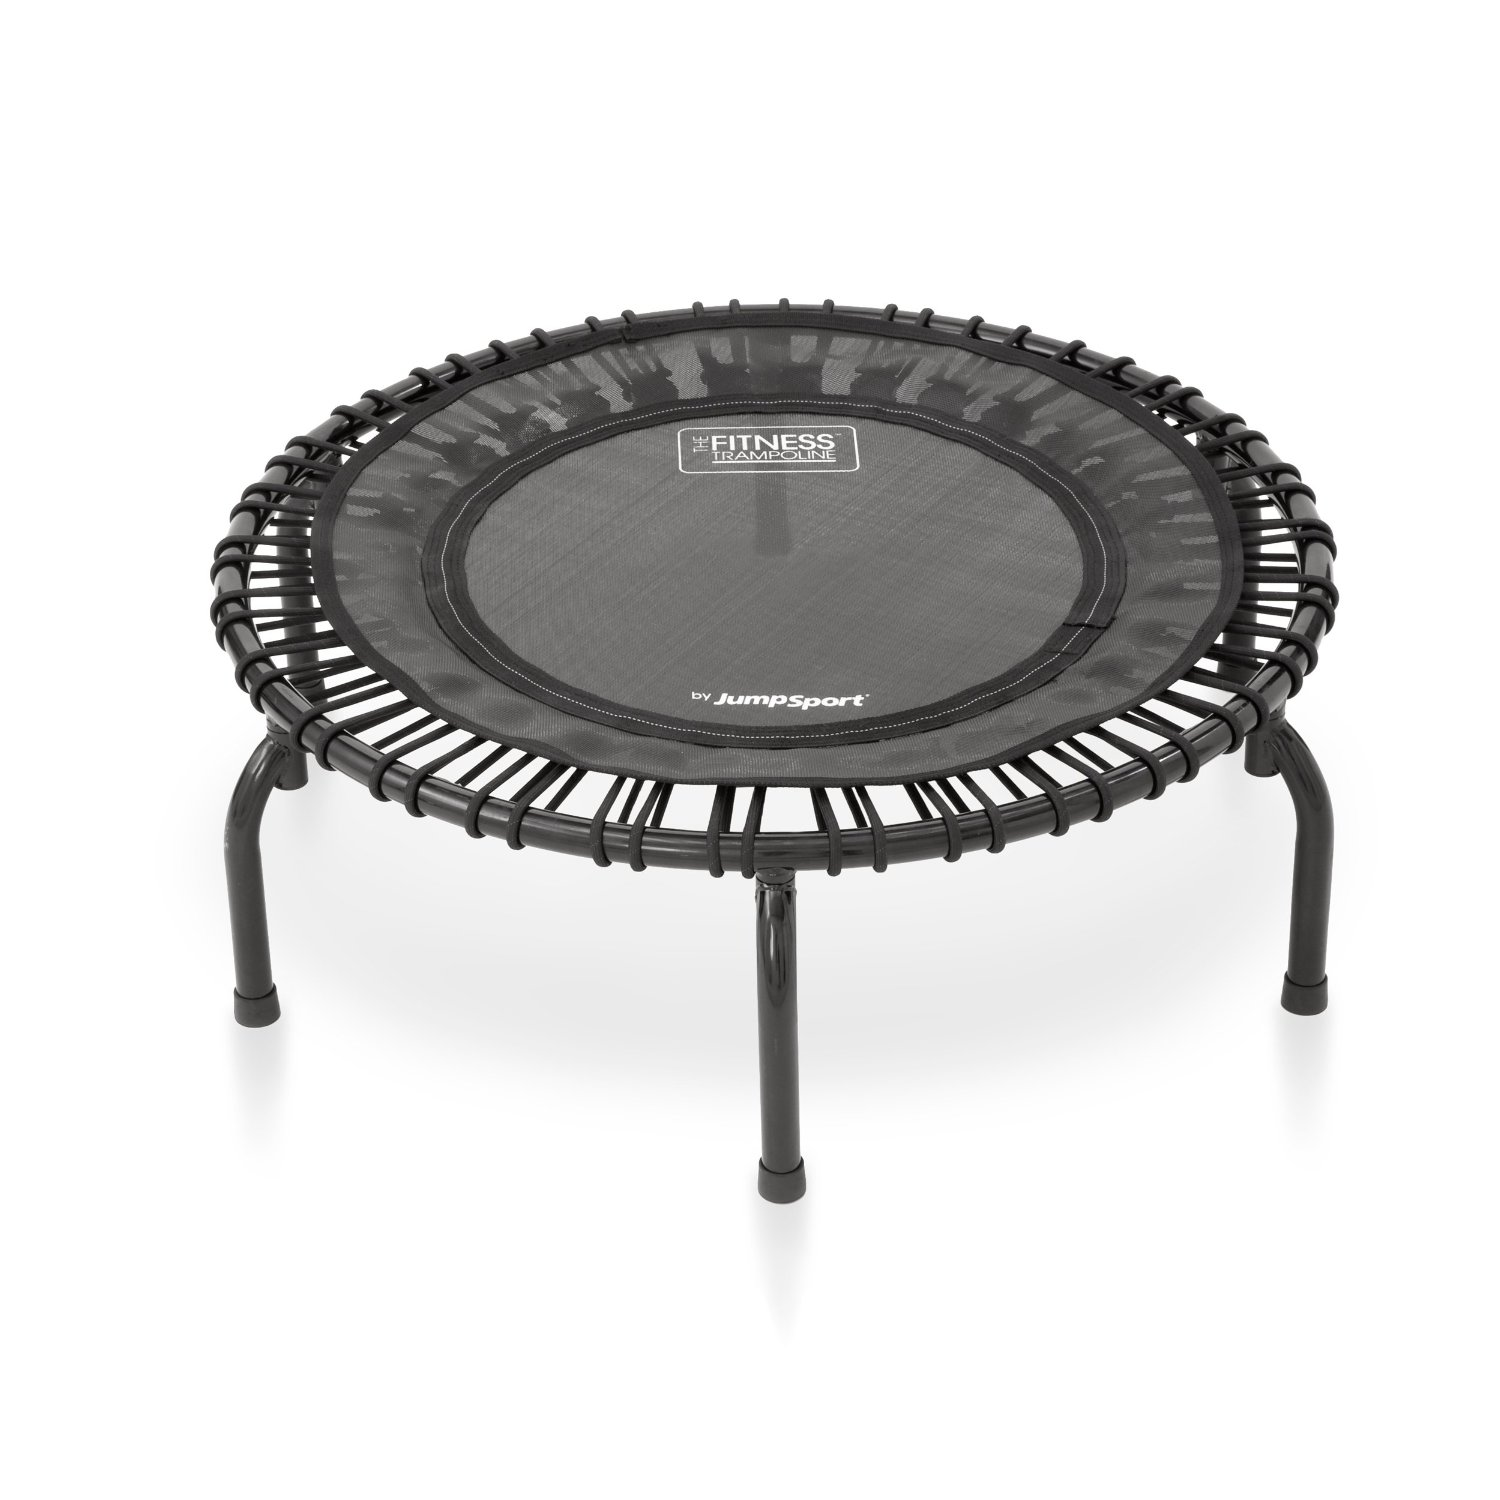 JumpSport The Fitness Trampoline Model 220 Non-Folding 40-Inch at Sears.com